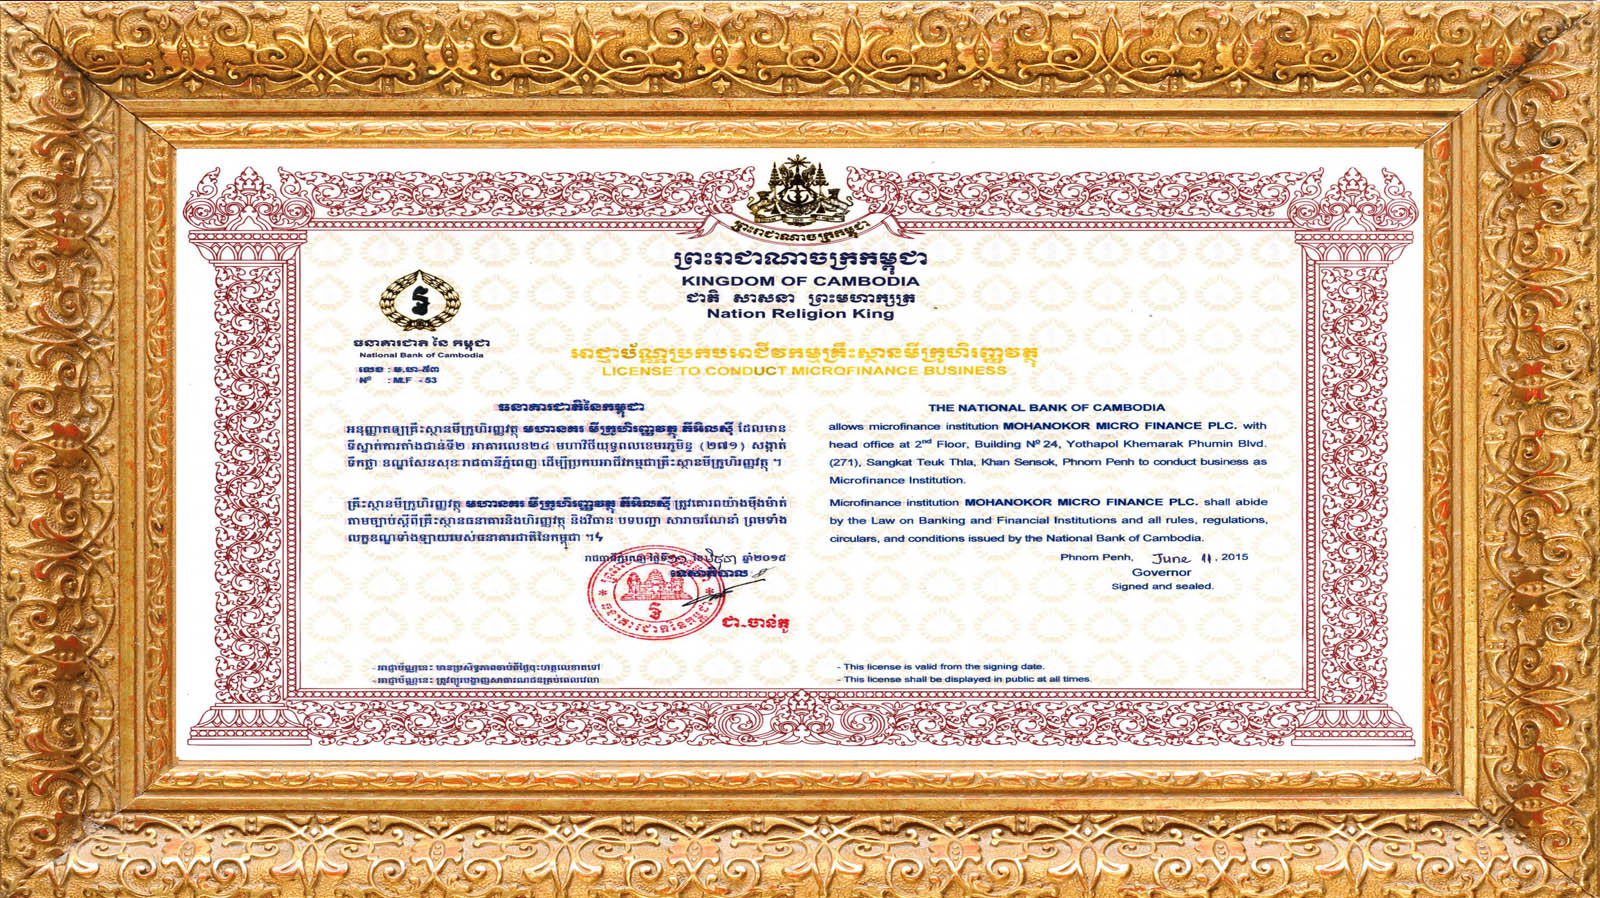 Licenses to conduct business as Microfinance Institution from National Bank of Cambodia